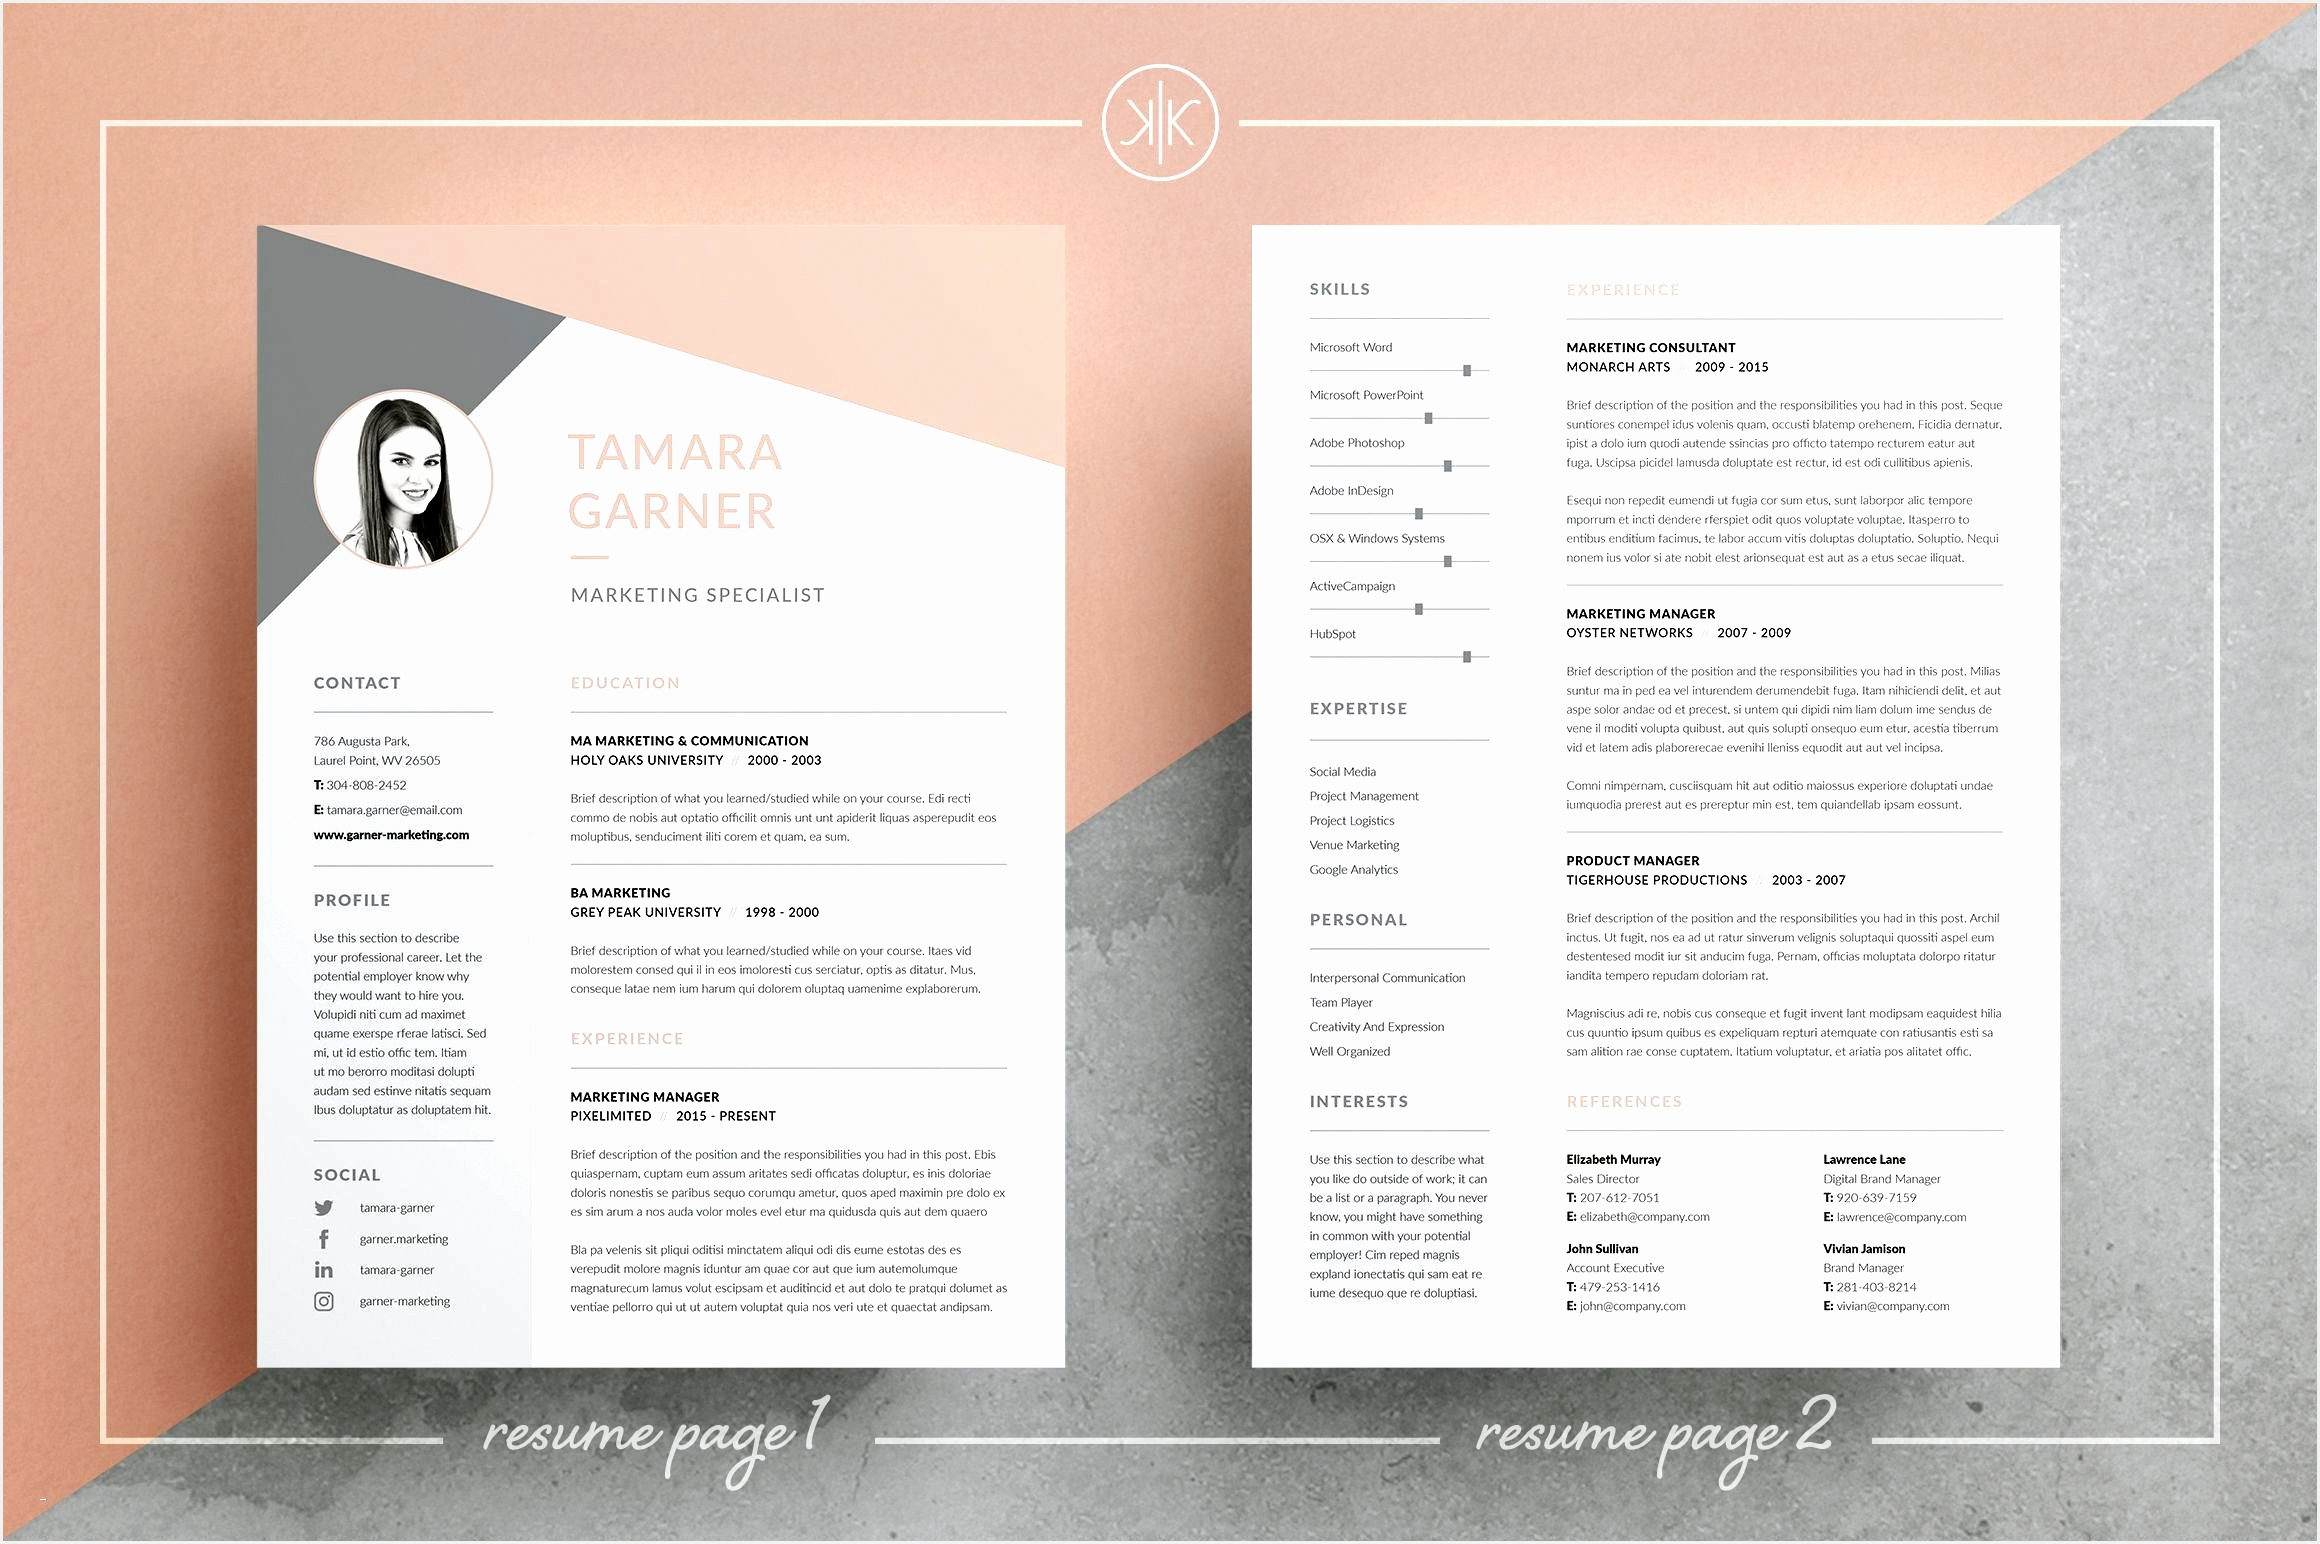 Professional Resume Templates for Microsoft Word Incredible Resume Cv Tamara15442320